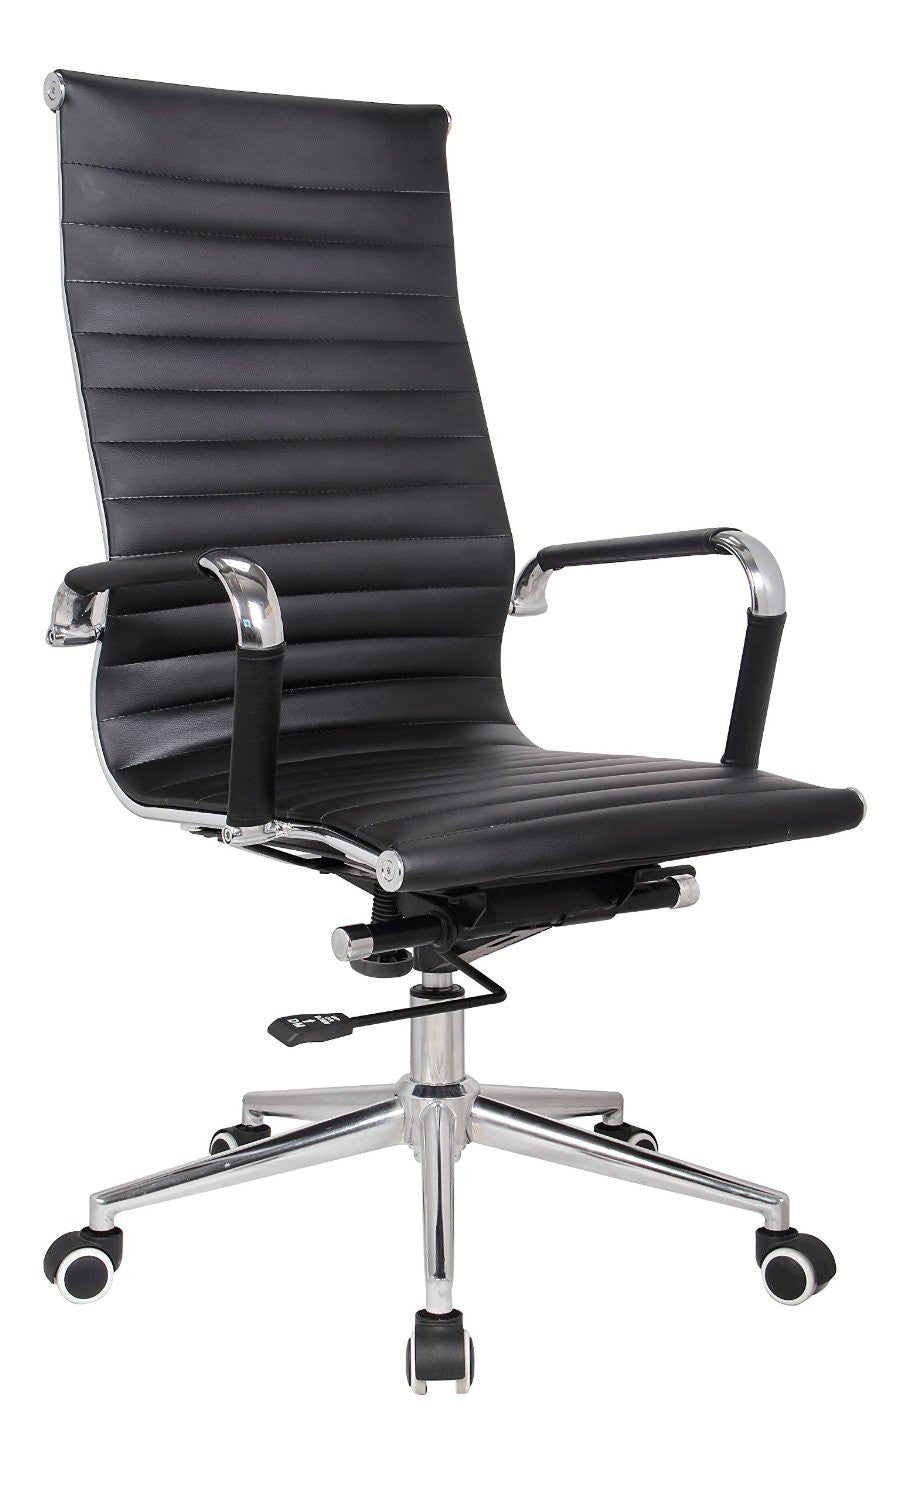 Office chair back view - Classic Eames Replica Black Pu Leather High Back Chair With Chrome Arms Side View